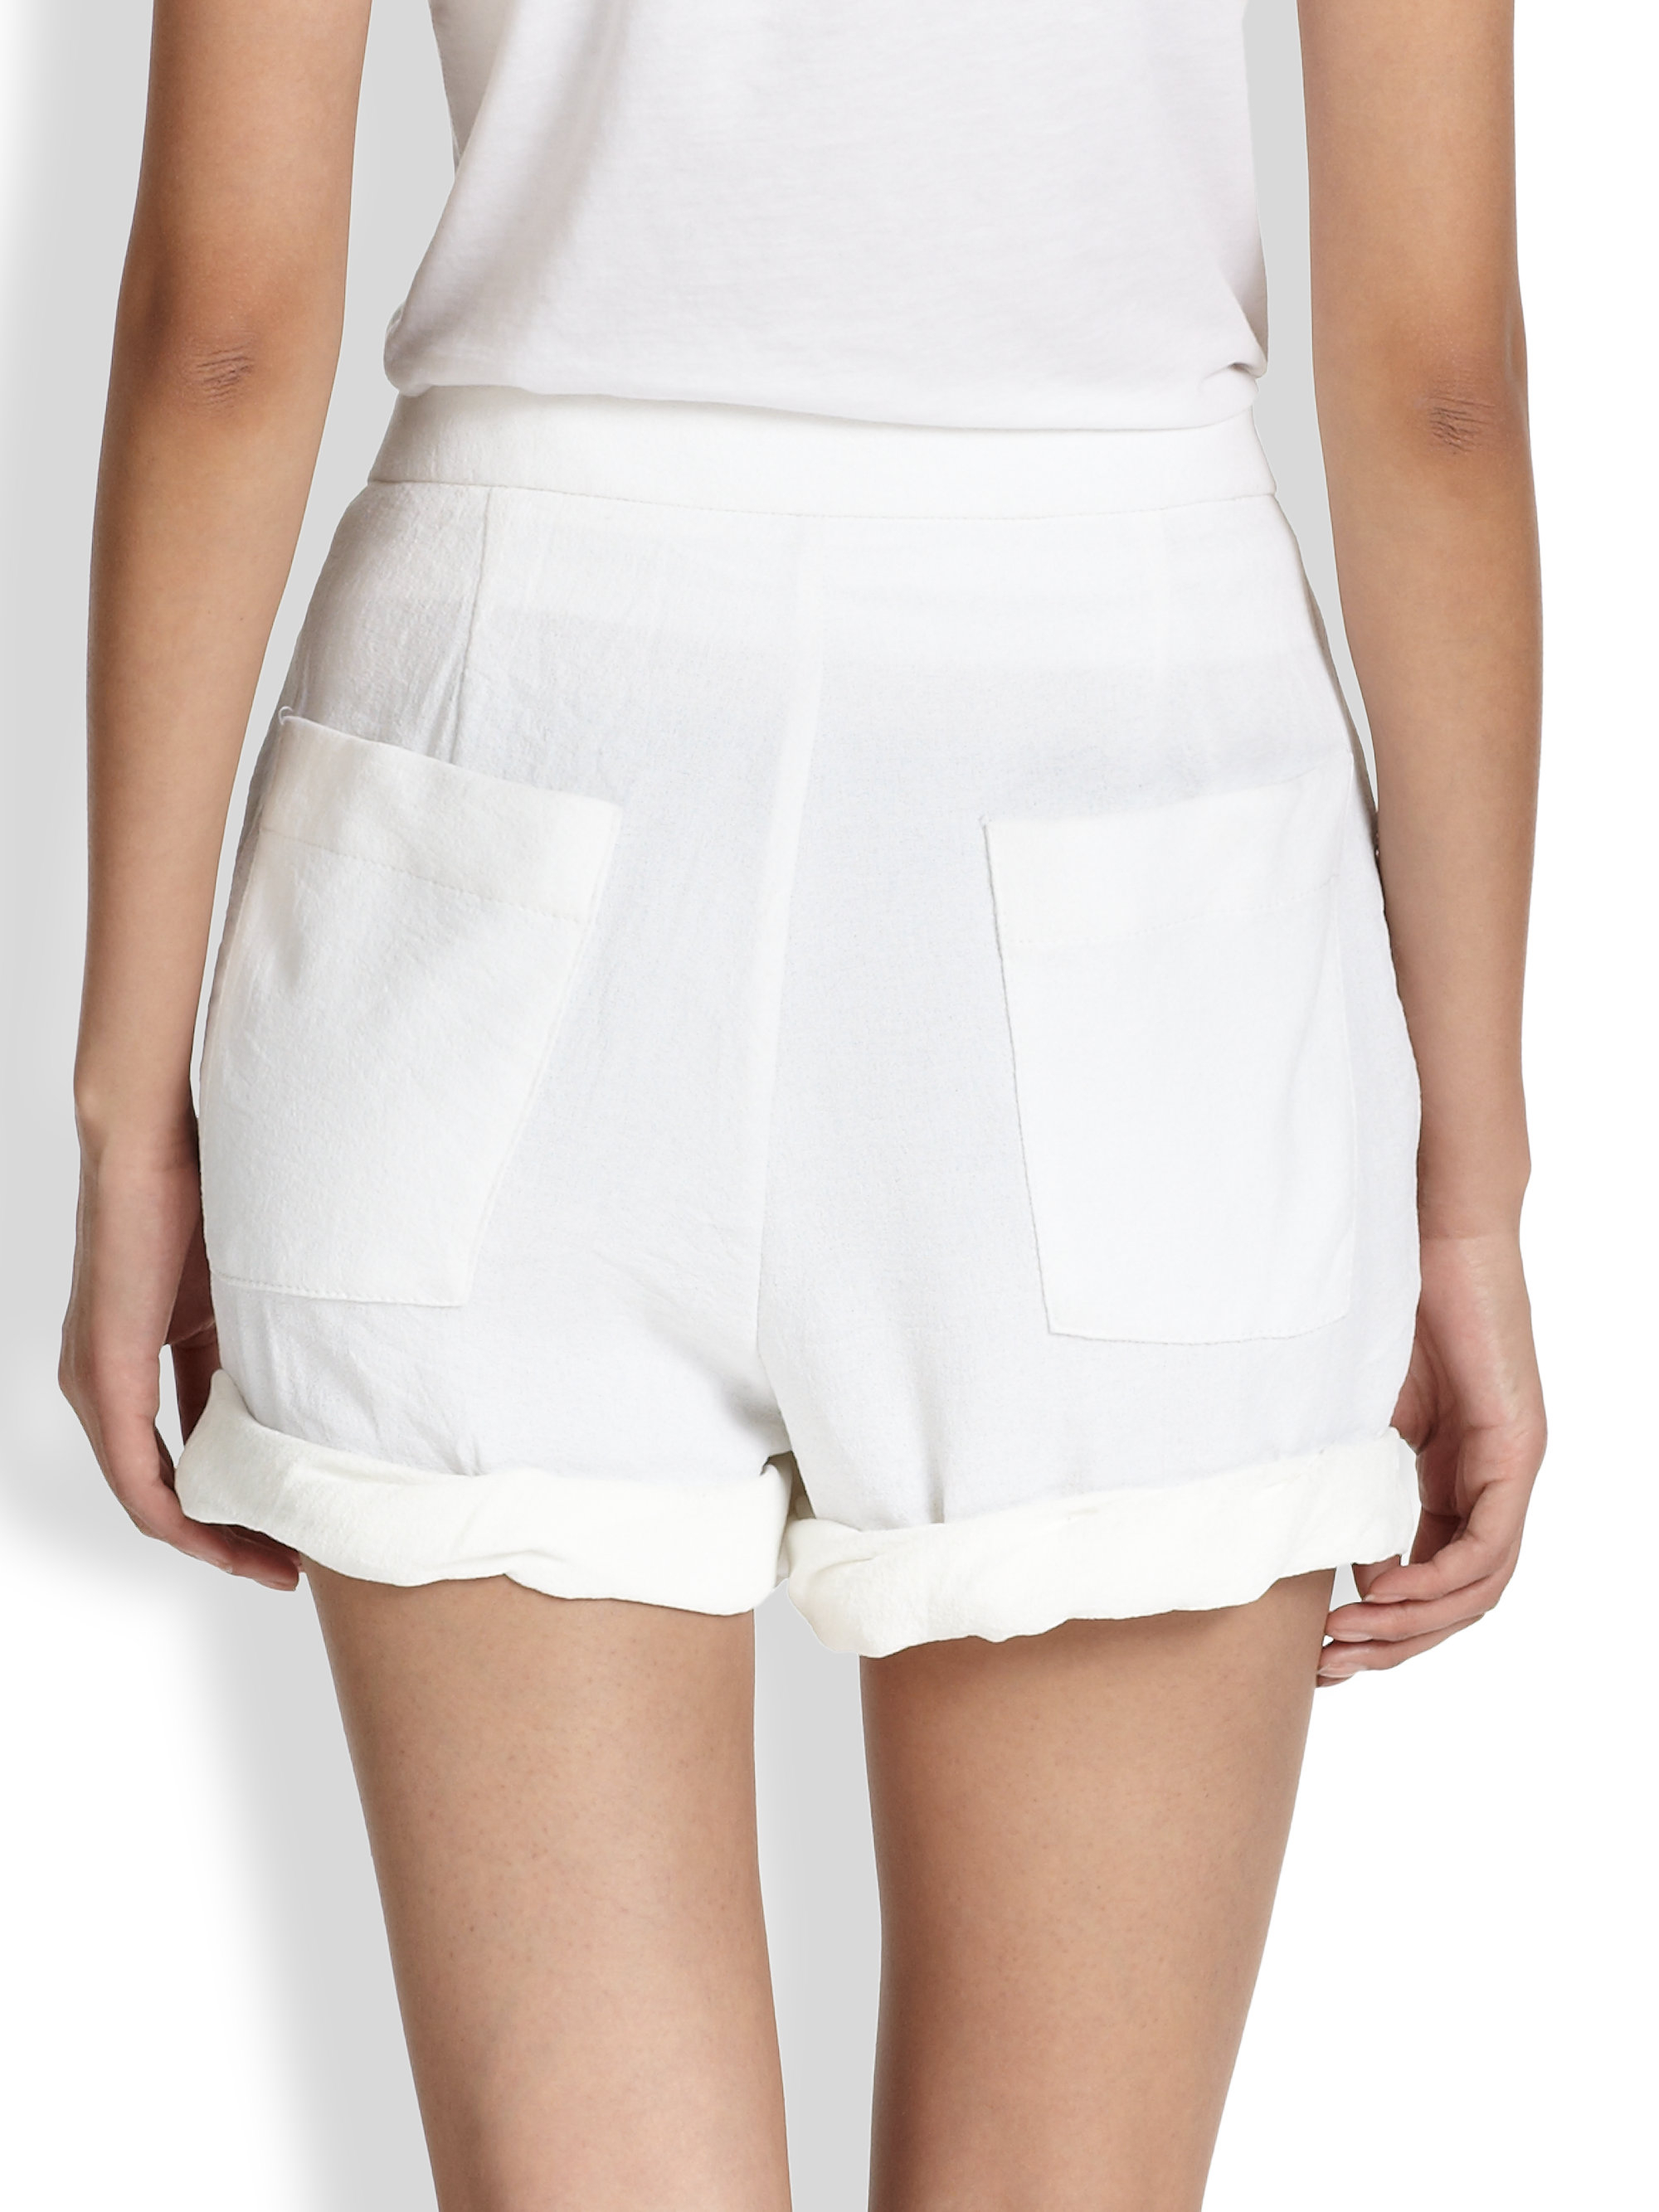 Lyst - Helmut Lang Drapefront Origami Shorts in White - photo#8